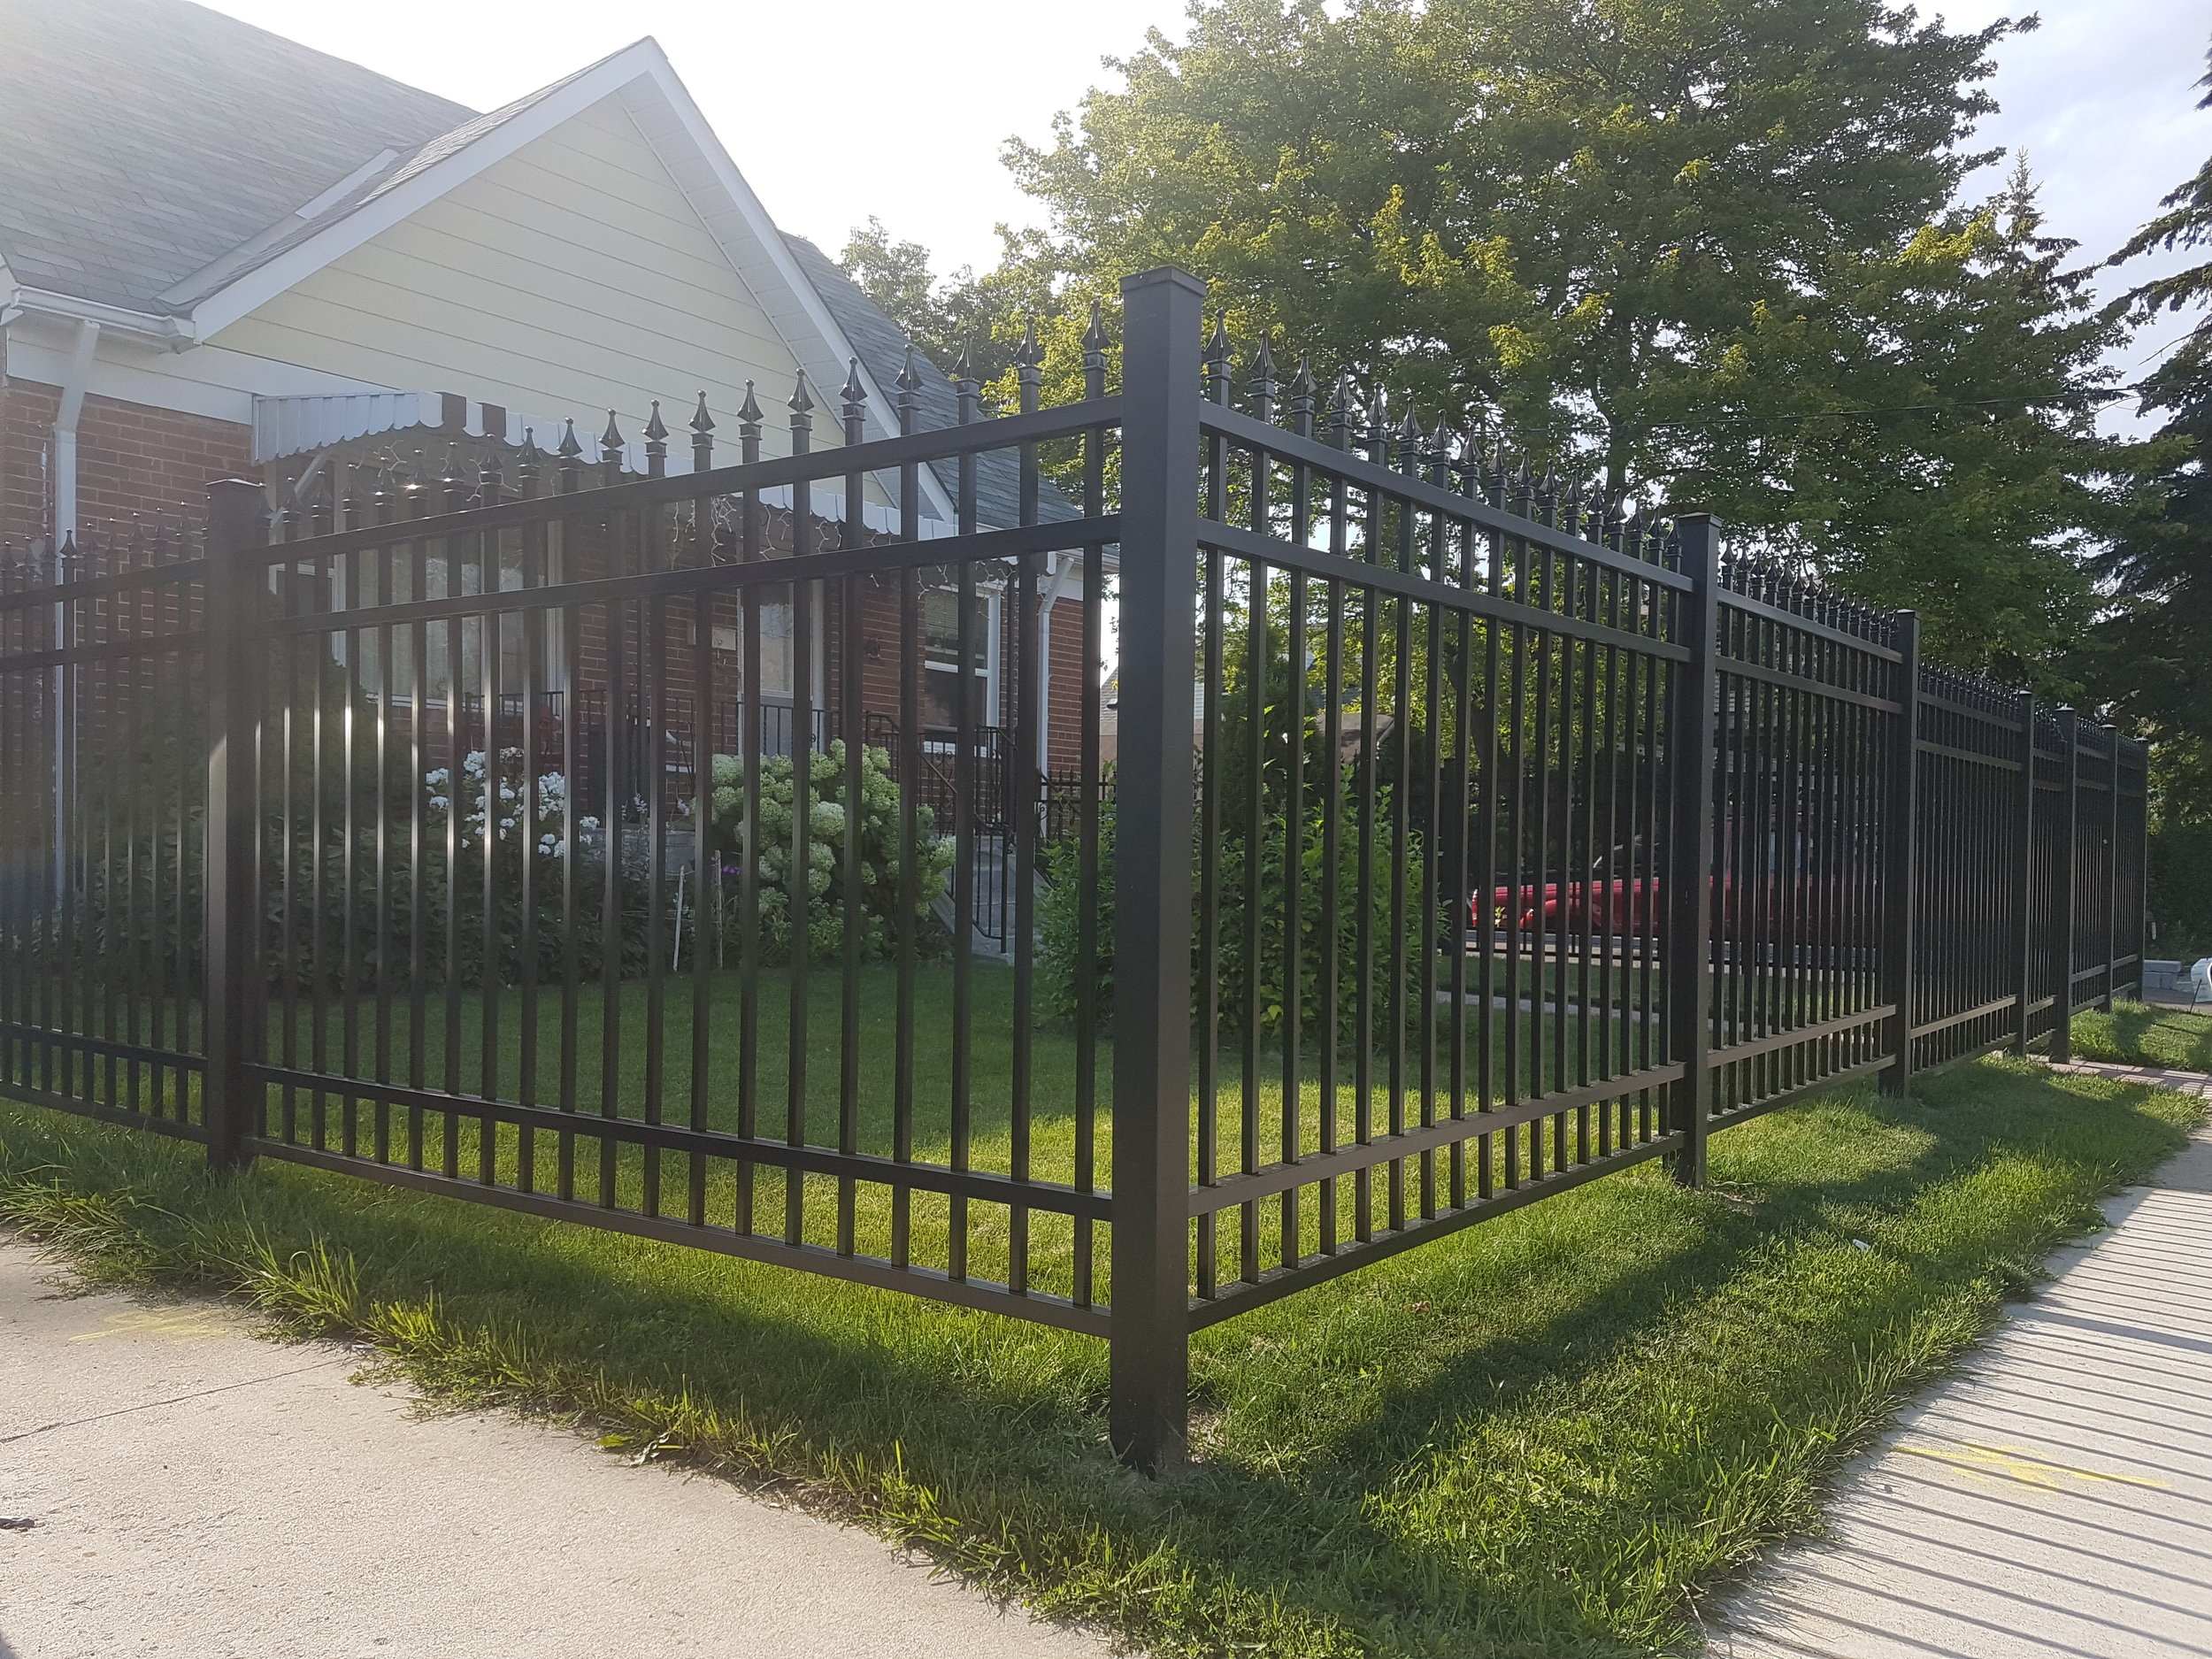 Aluminum Fence Toronto -Double Top And Bottom Bars With Finials